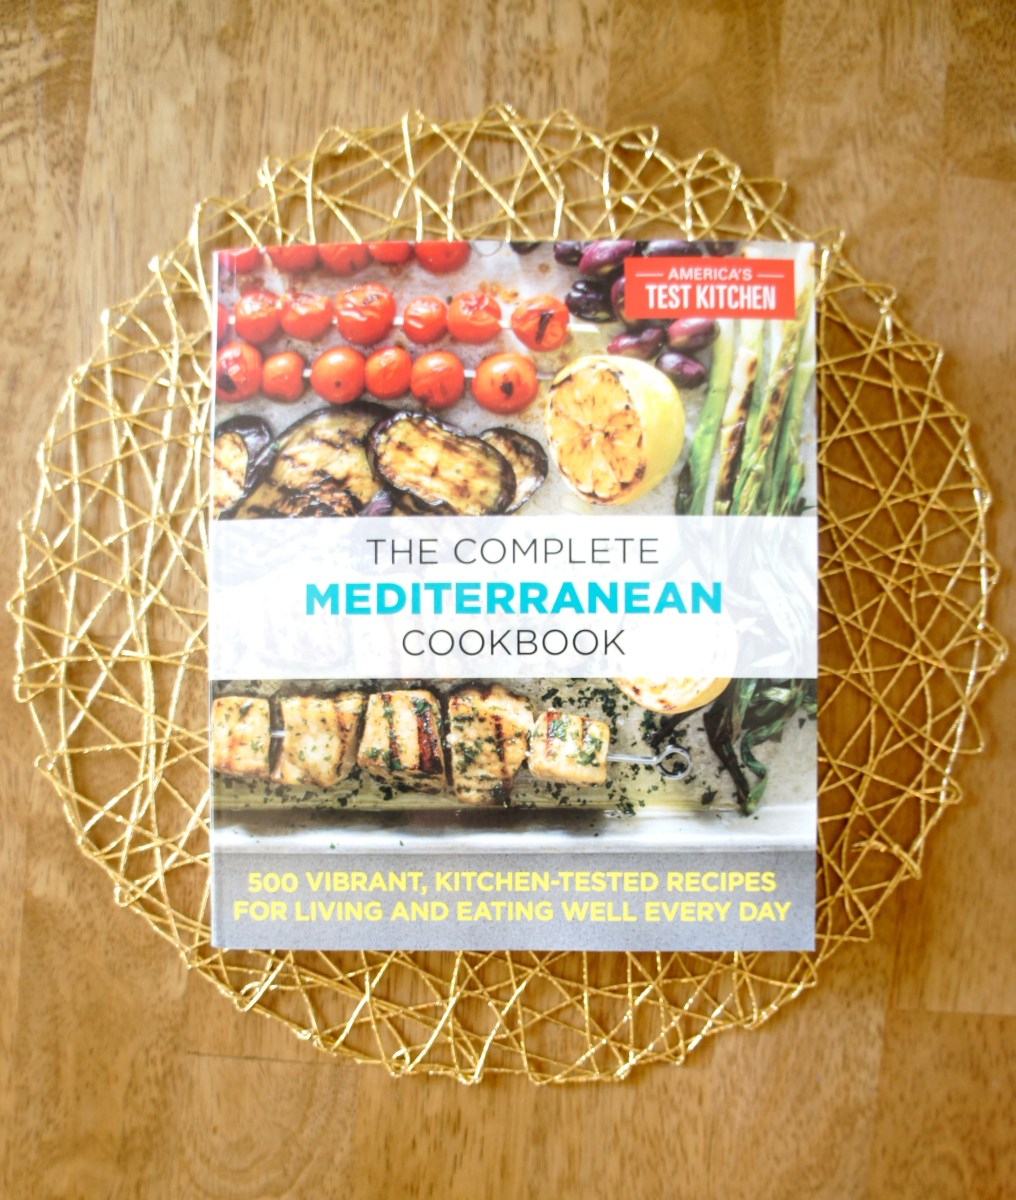 Cookbook Review: The Complete Mediterranean Cookbook